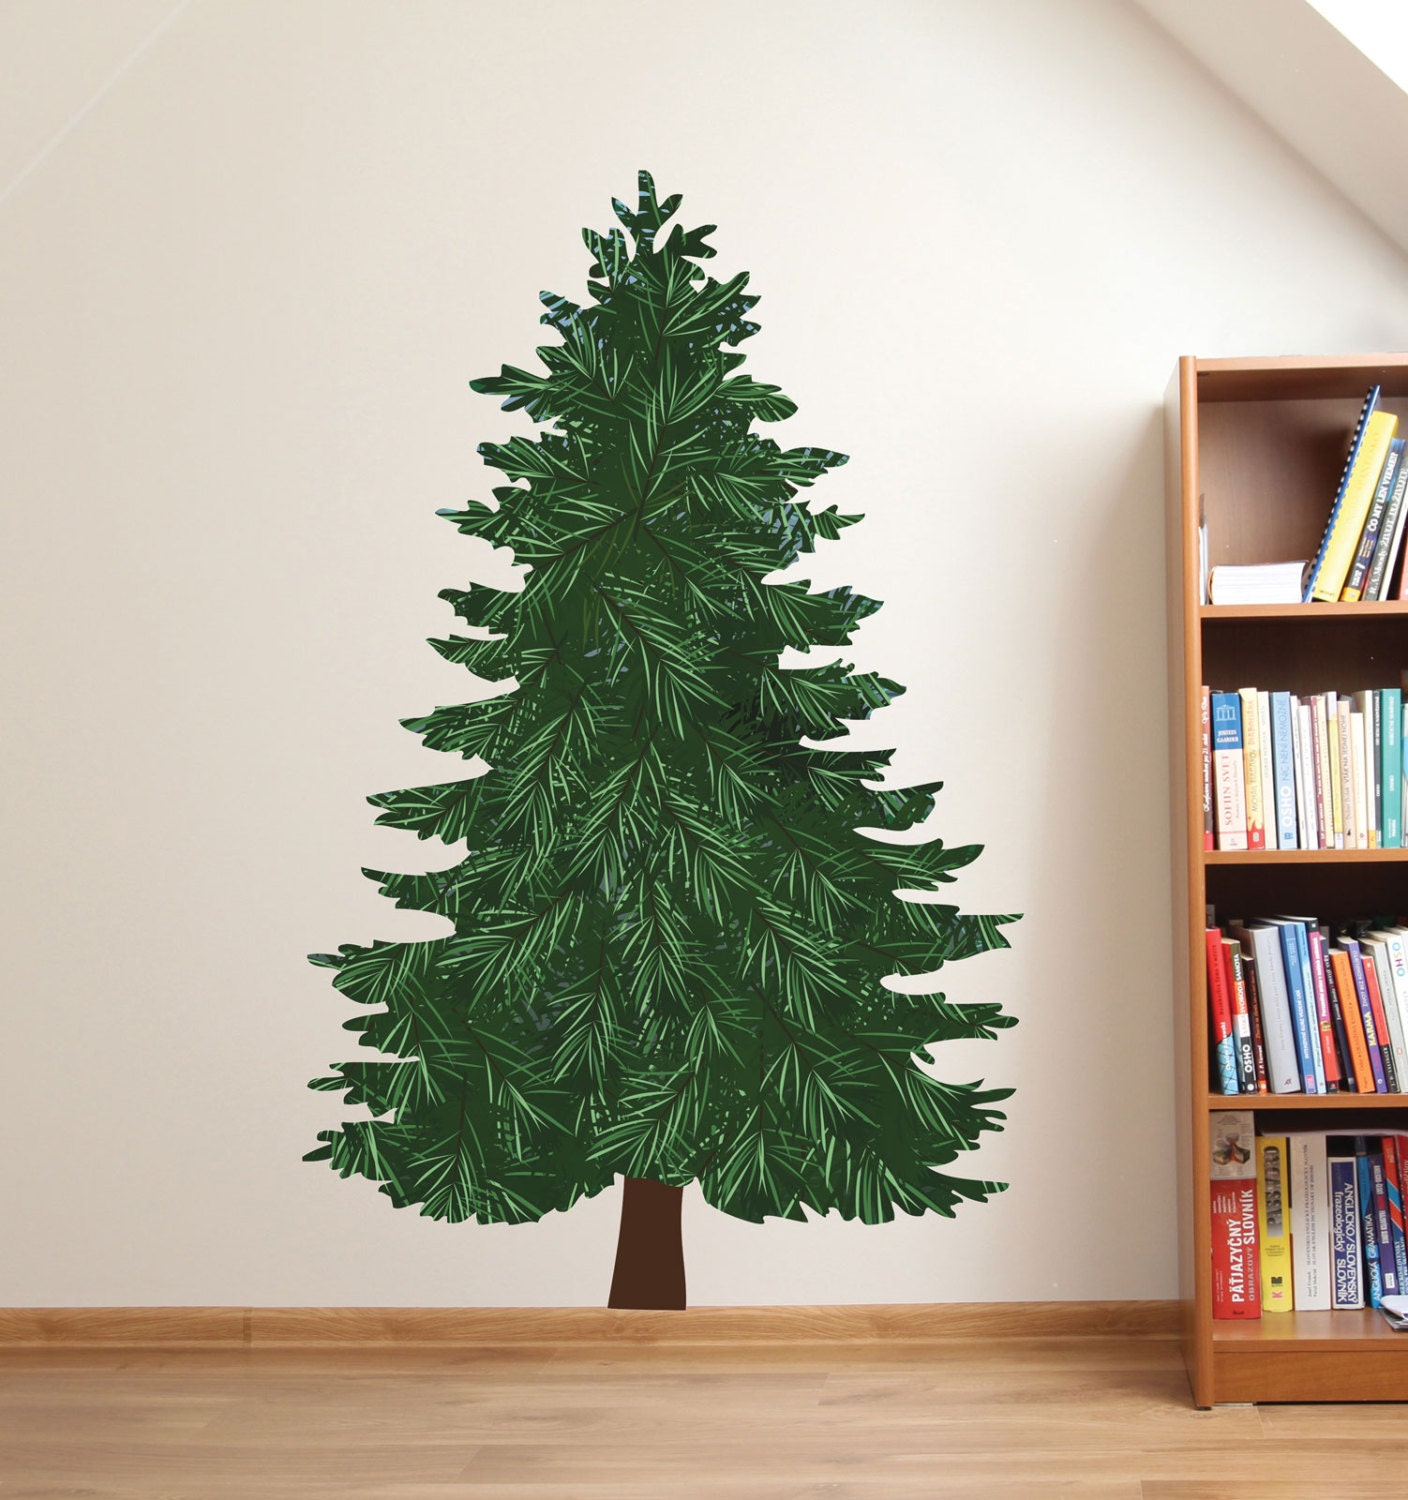 Christmas Tree Wall Decal- Reusable Wall Graphic, Wall Sticker, sizes to choose from, Use every year! - SolanaGraphicStudios